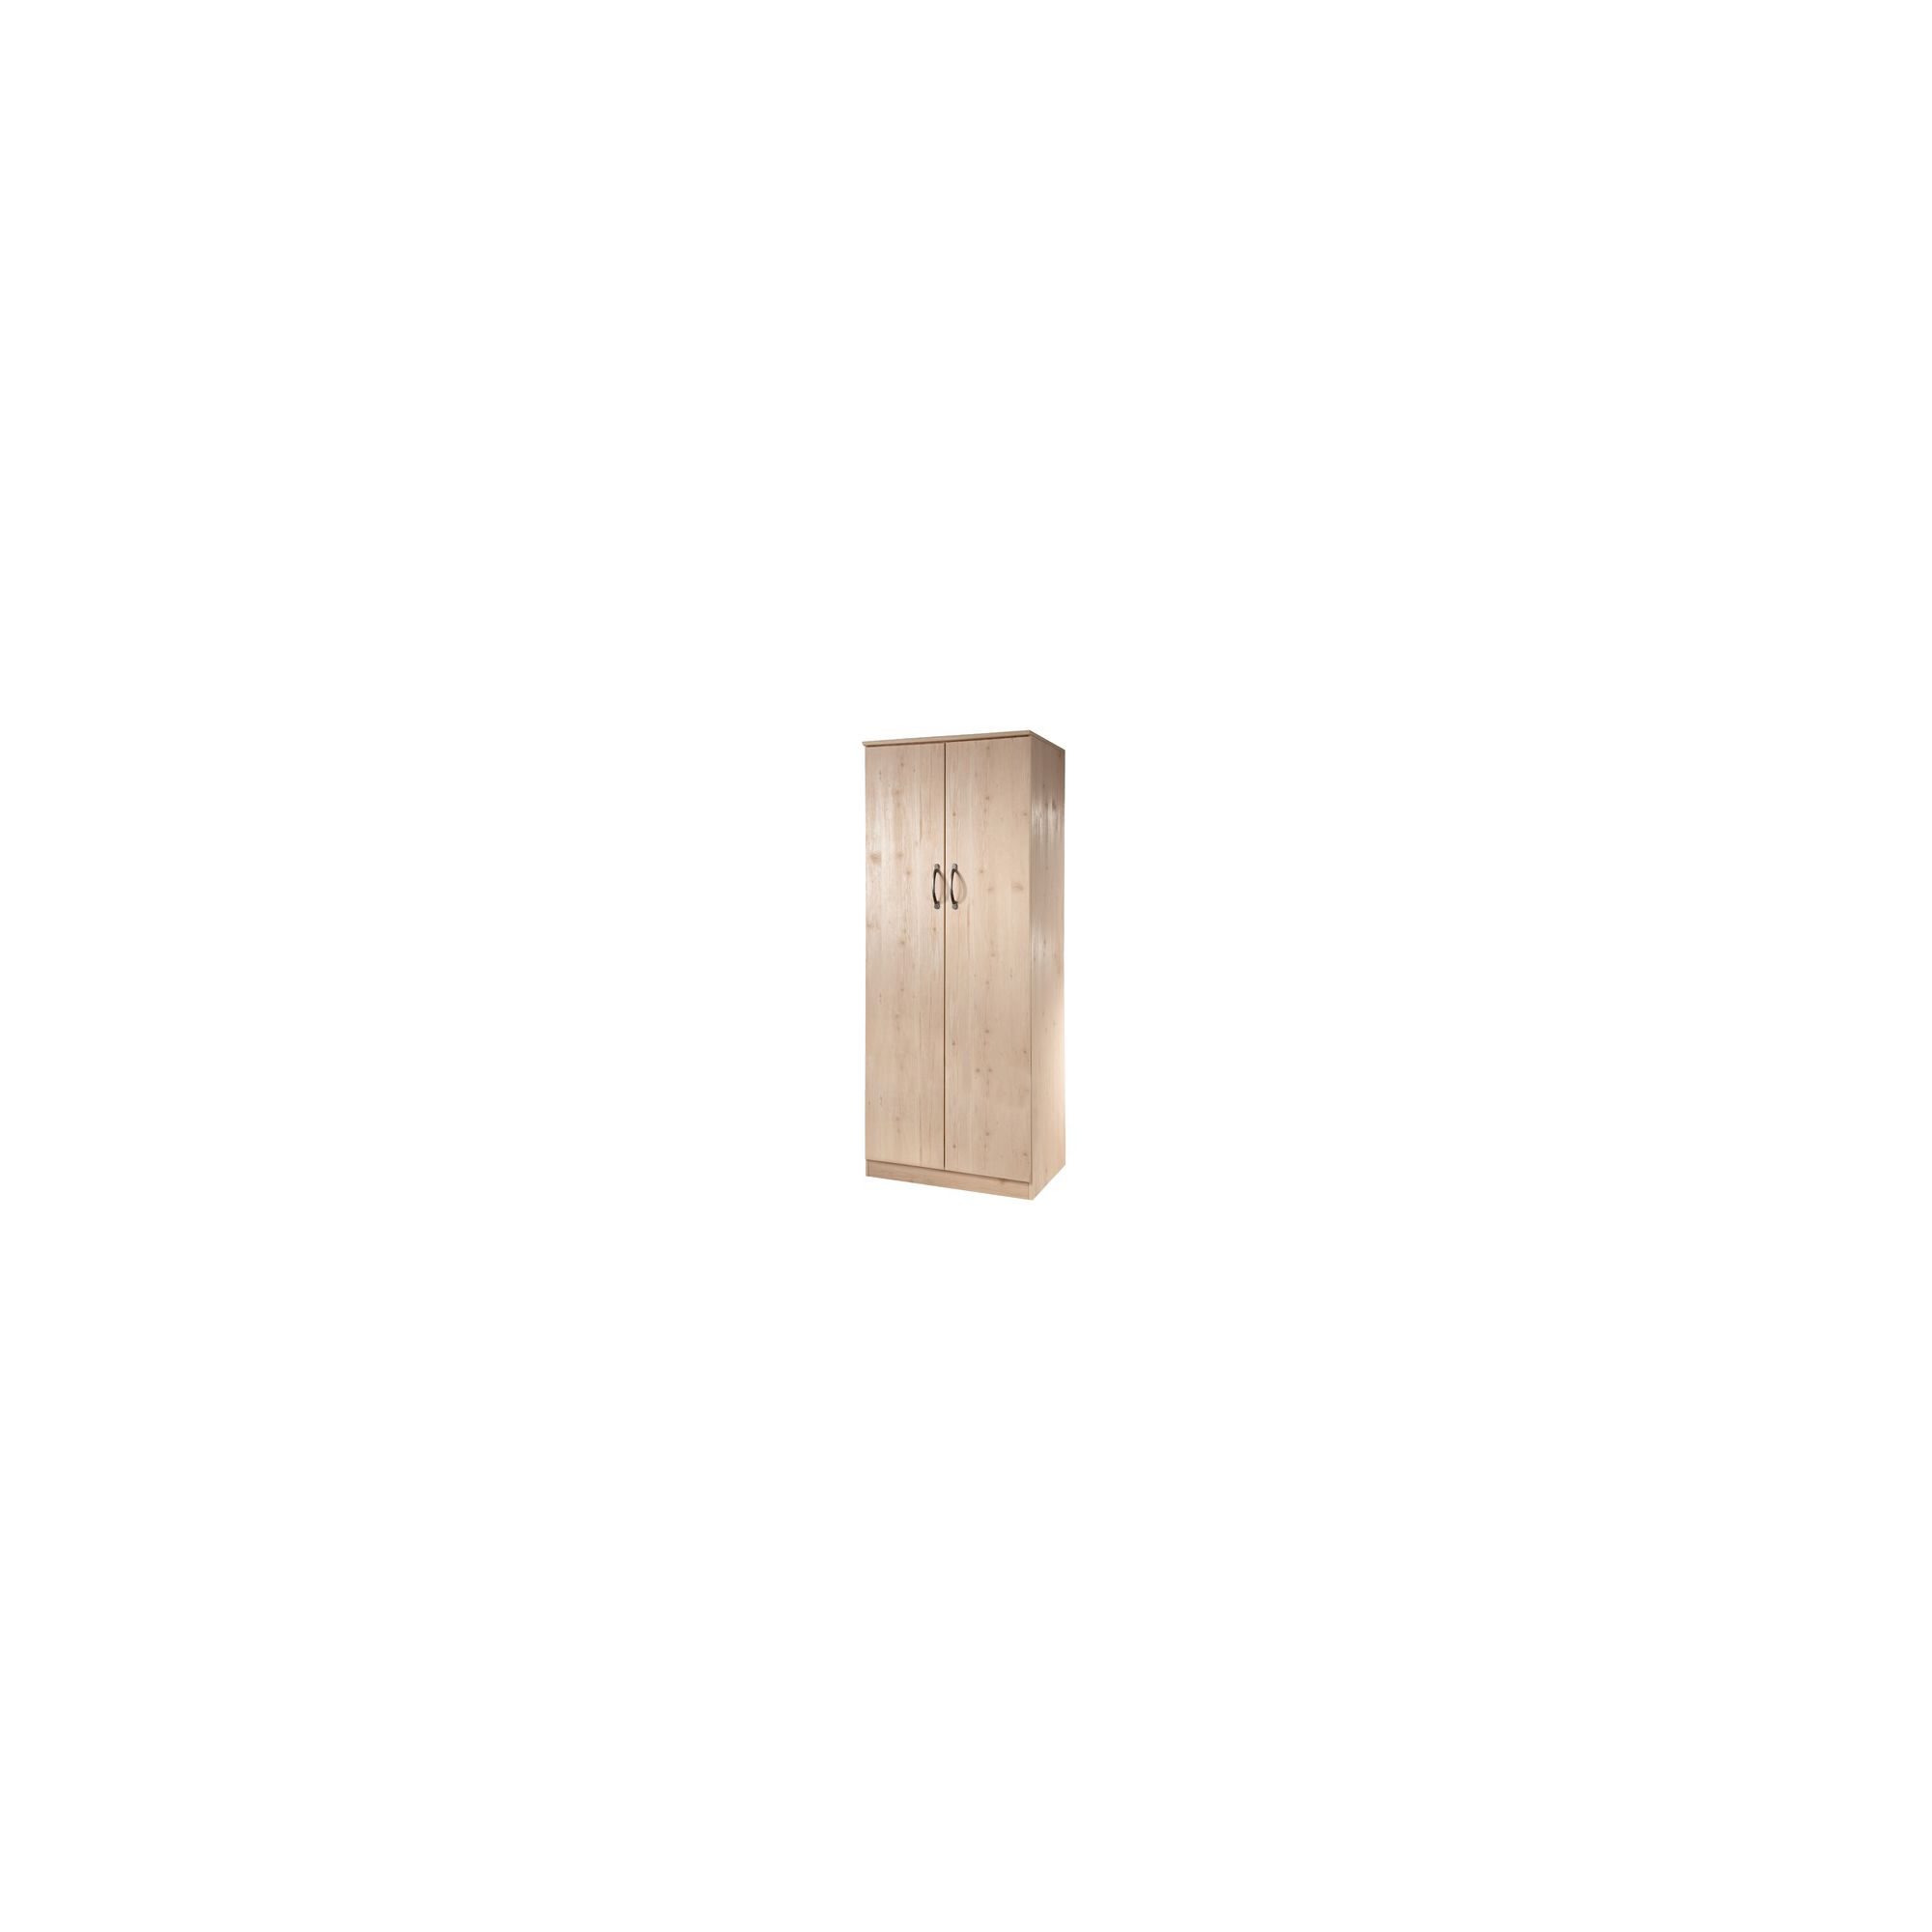 Welcome Furniture Florida Plain Wardrobe - 197cm H x 74cm W at Tesco Direct